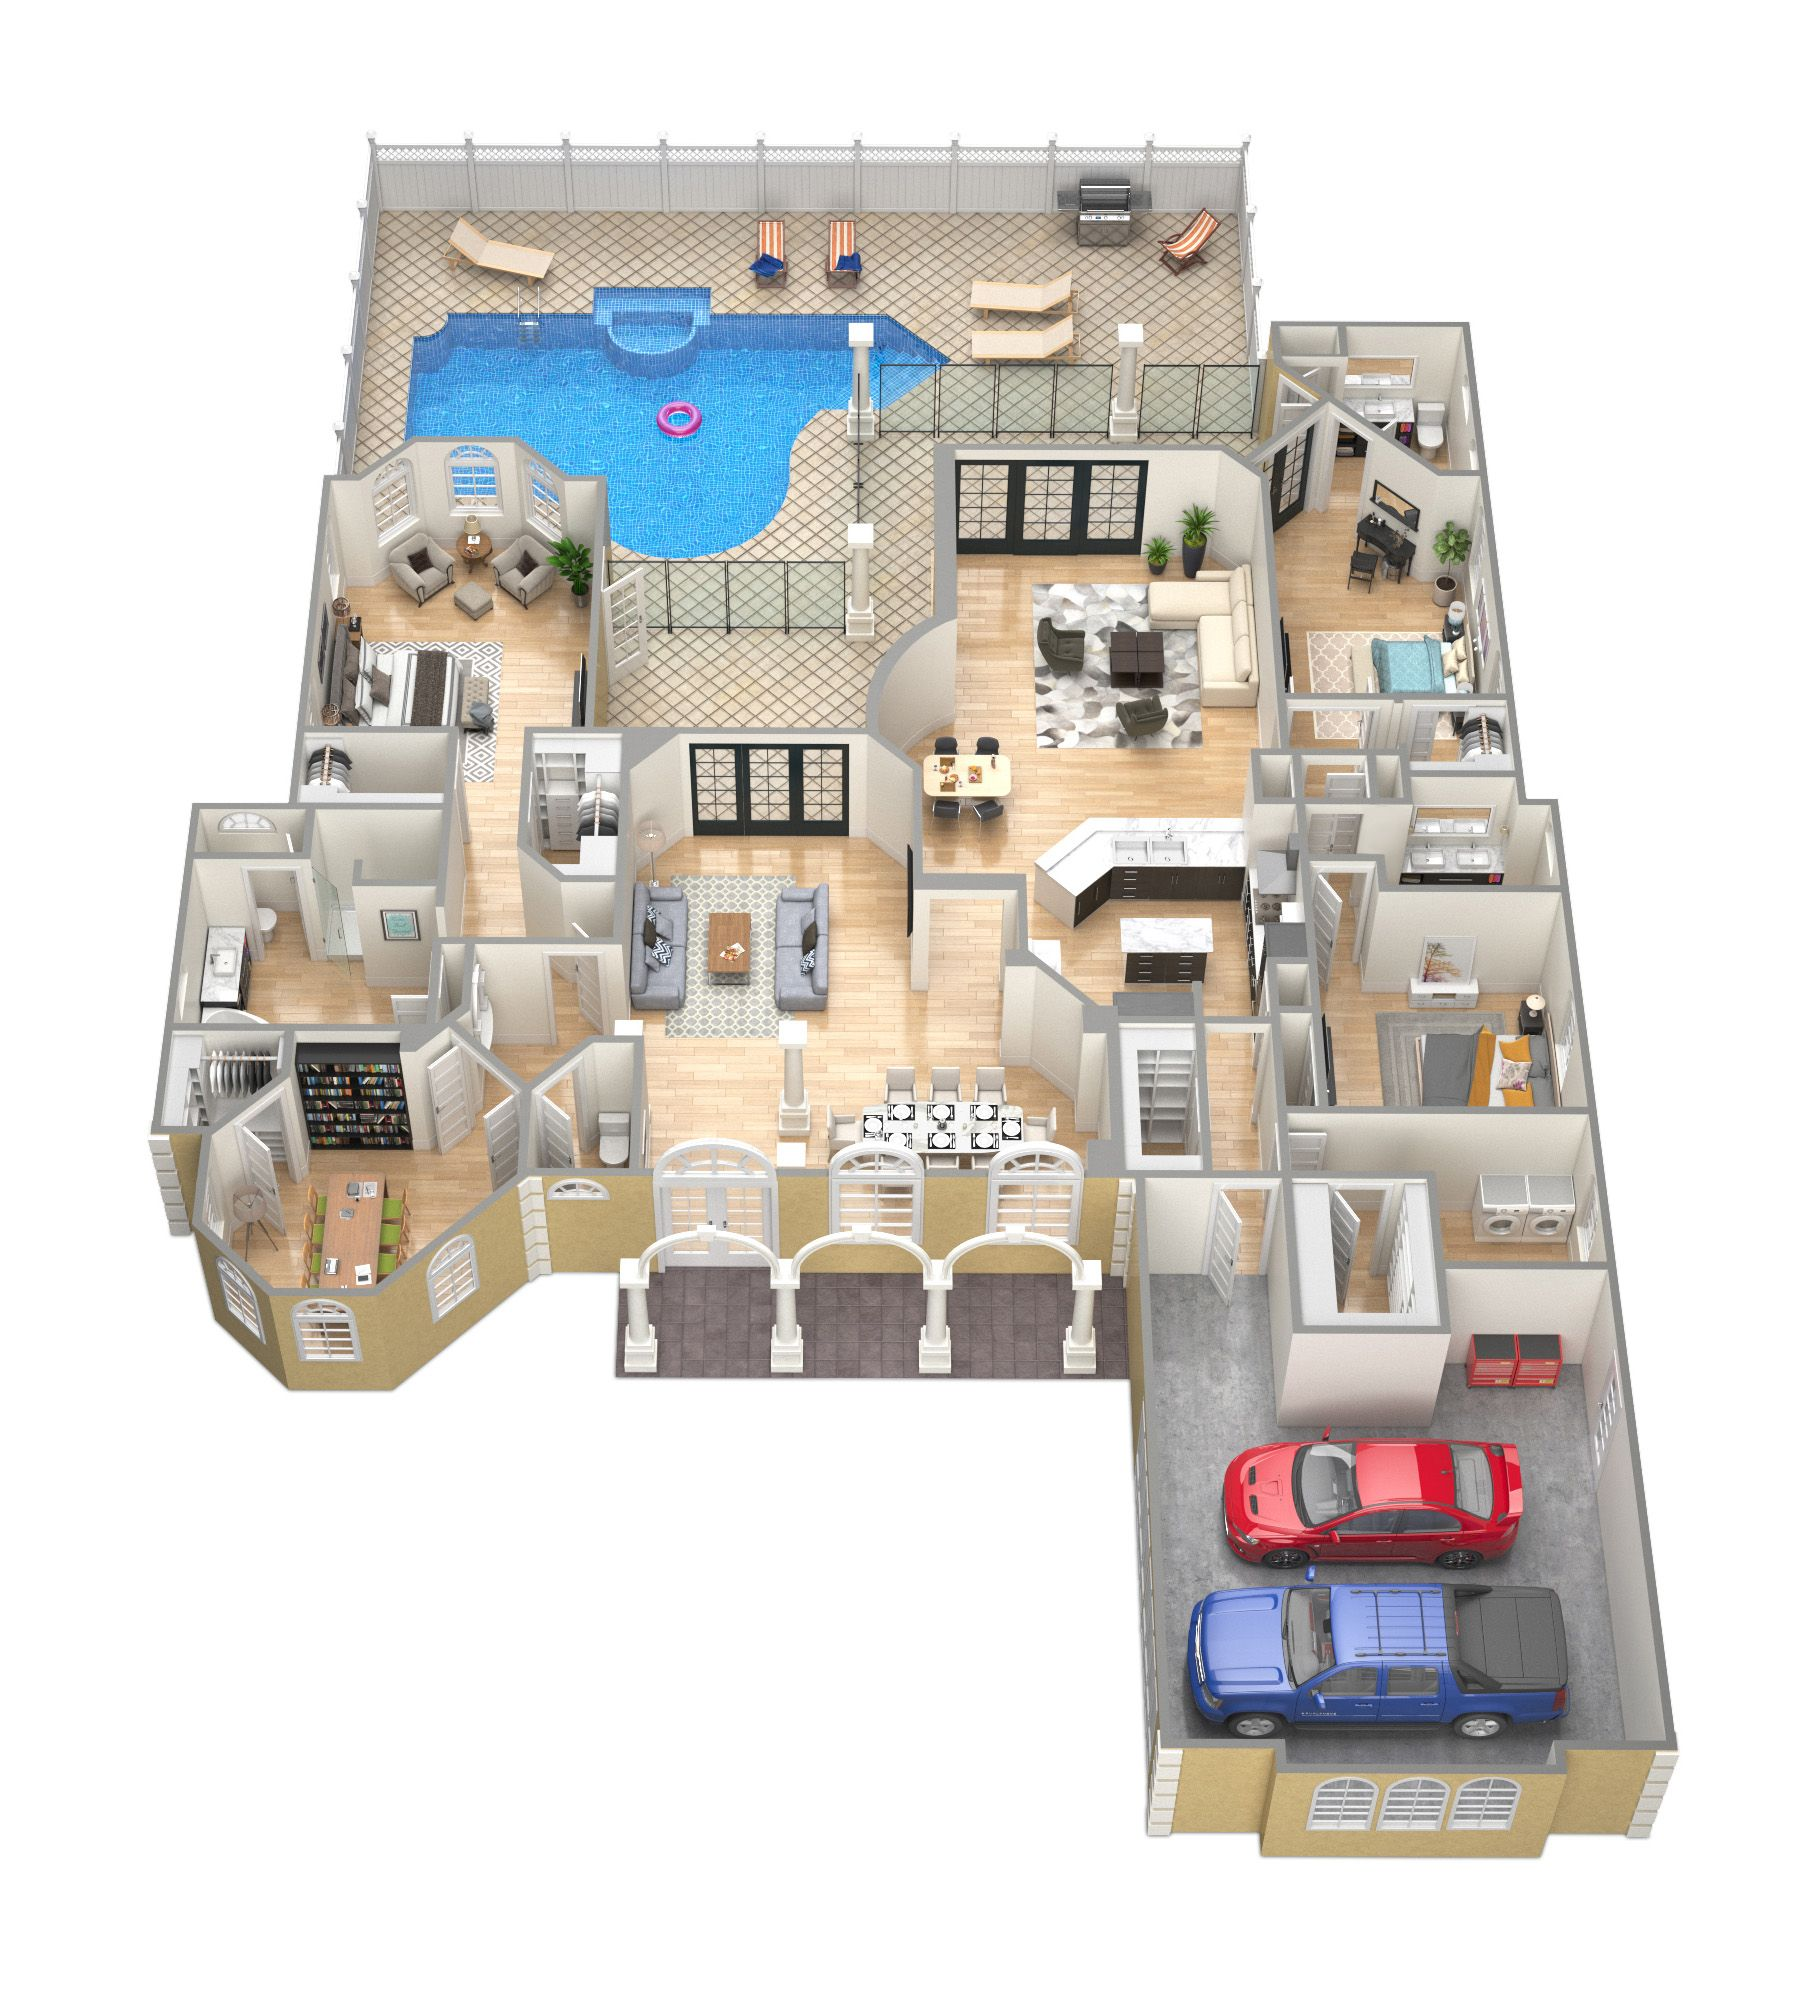 3d House Floor Plan Ideas: 4+2 DIY Home Staging Cost, Tips, How To, Ideas